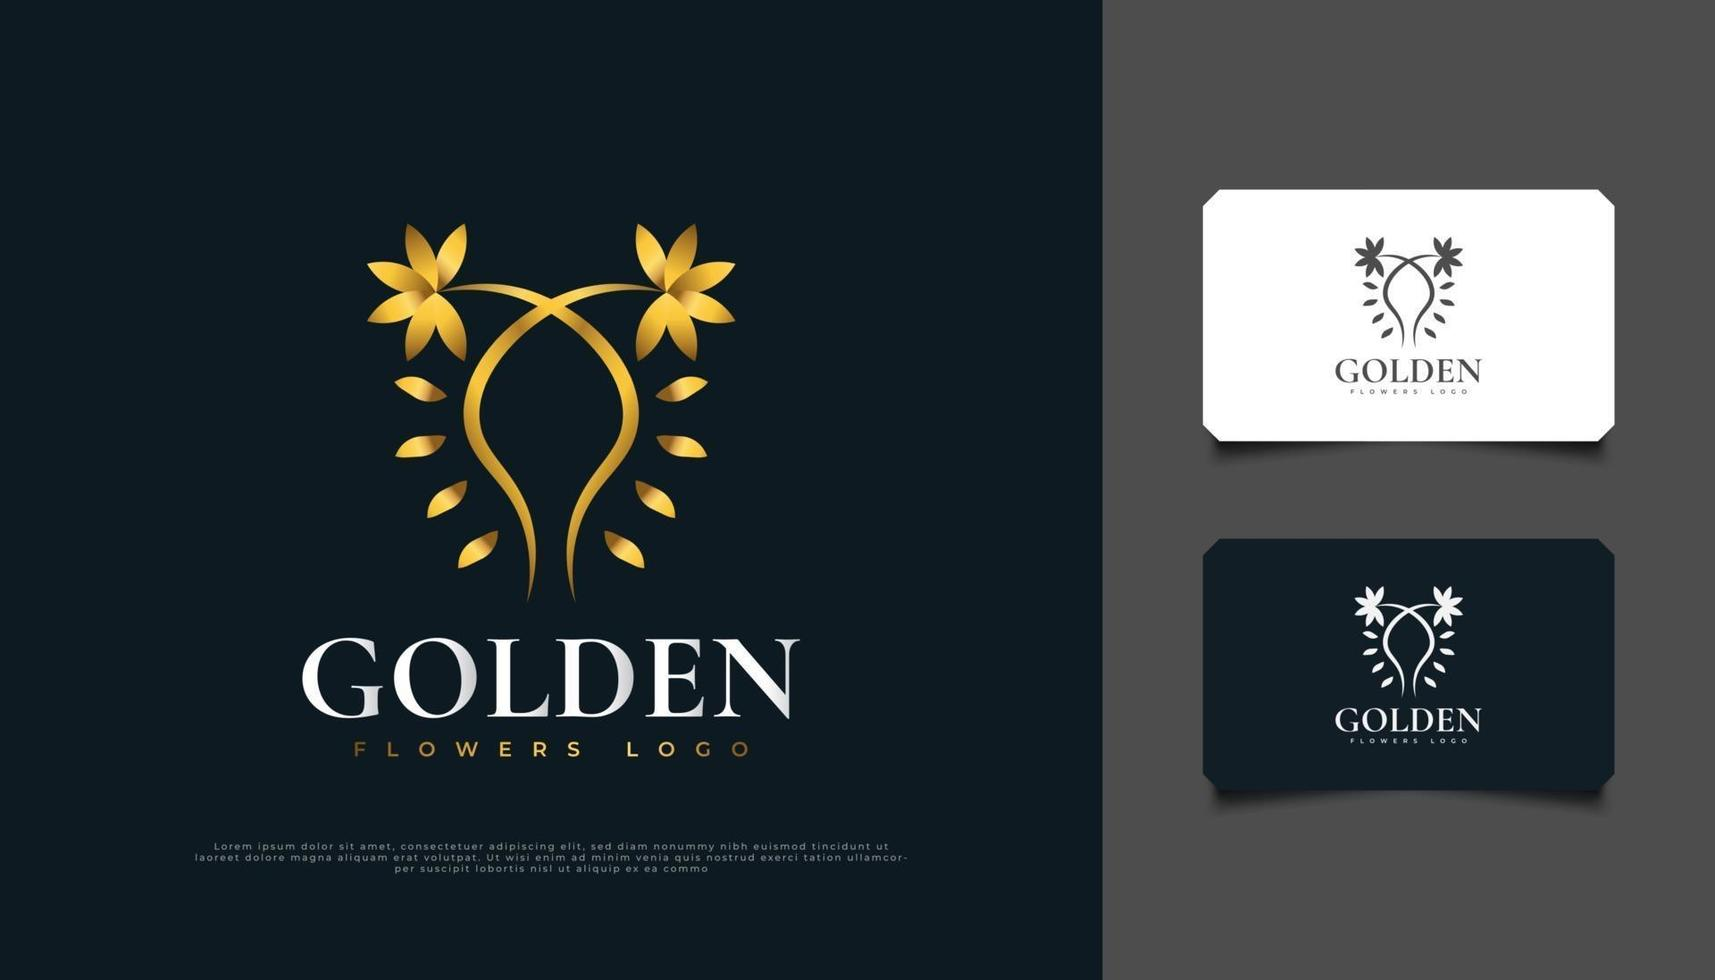 Luxury Golden Flowers Logo Design with Line Style, Suitable for Spa, Beauty, Florists, Resort, or Cosmetic Product vector